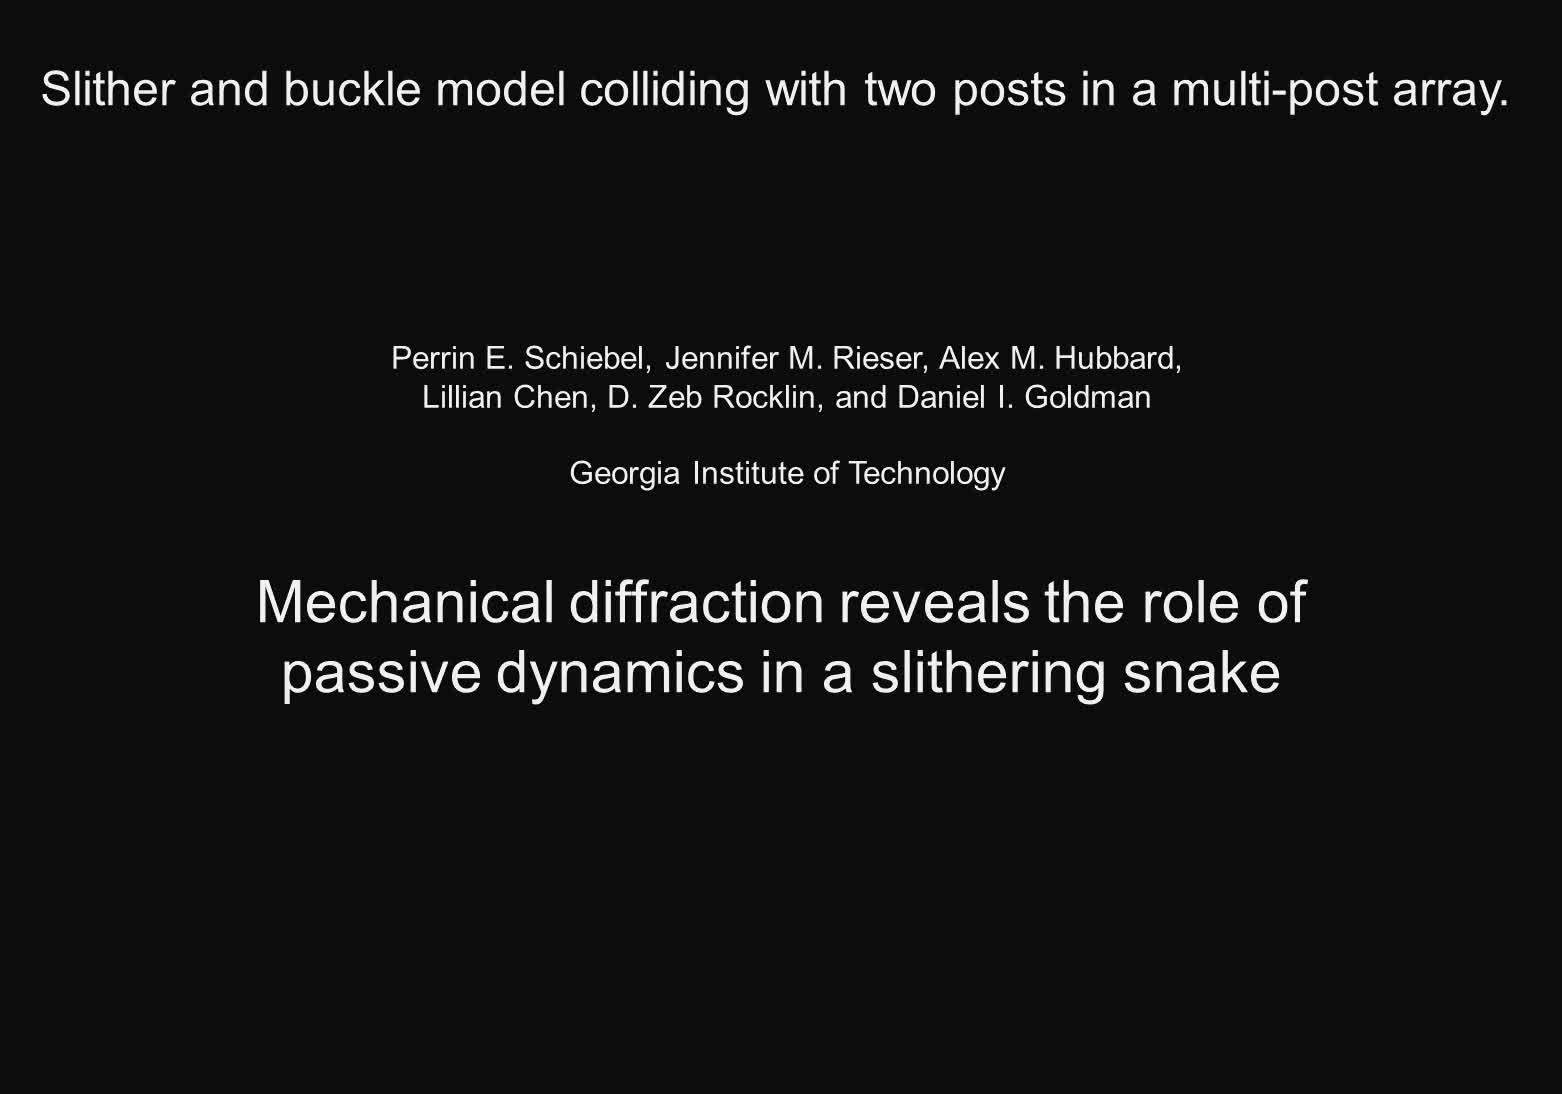 Mechanical diffraction reveals the role of passive dynamics